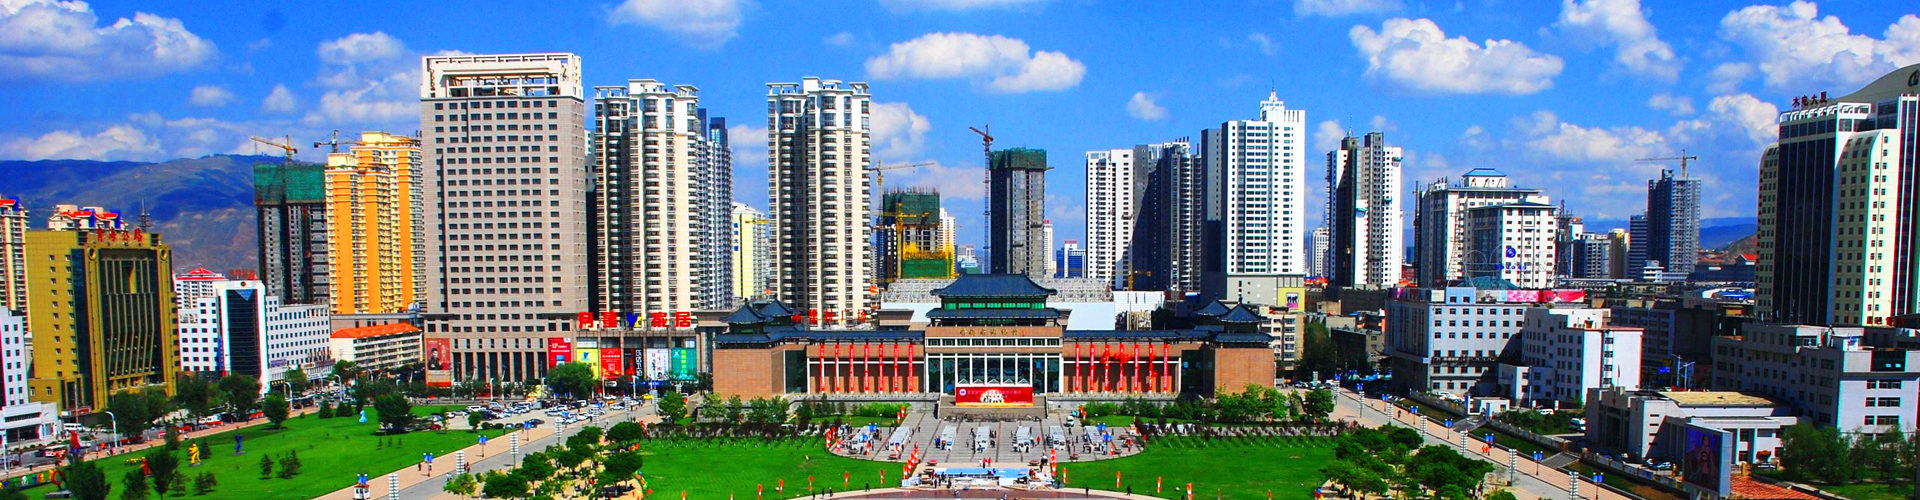 Xining Travel Guide